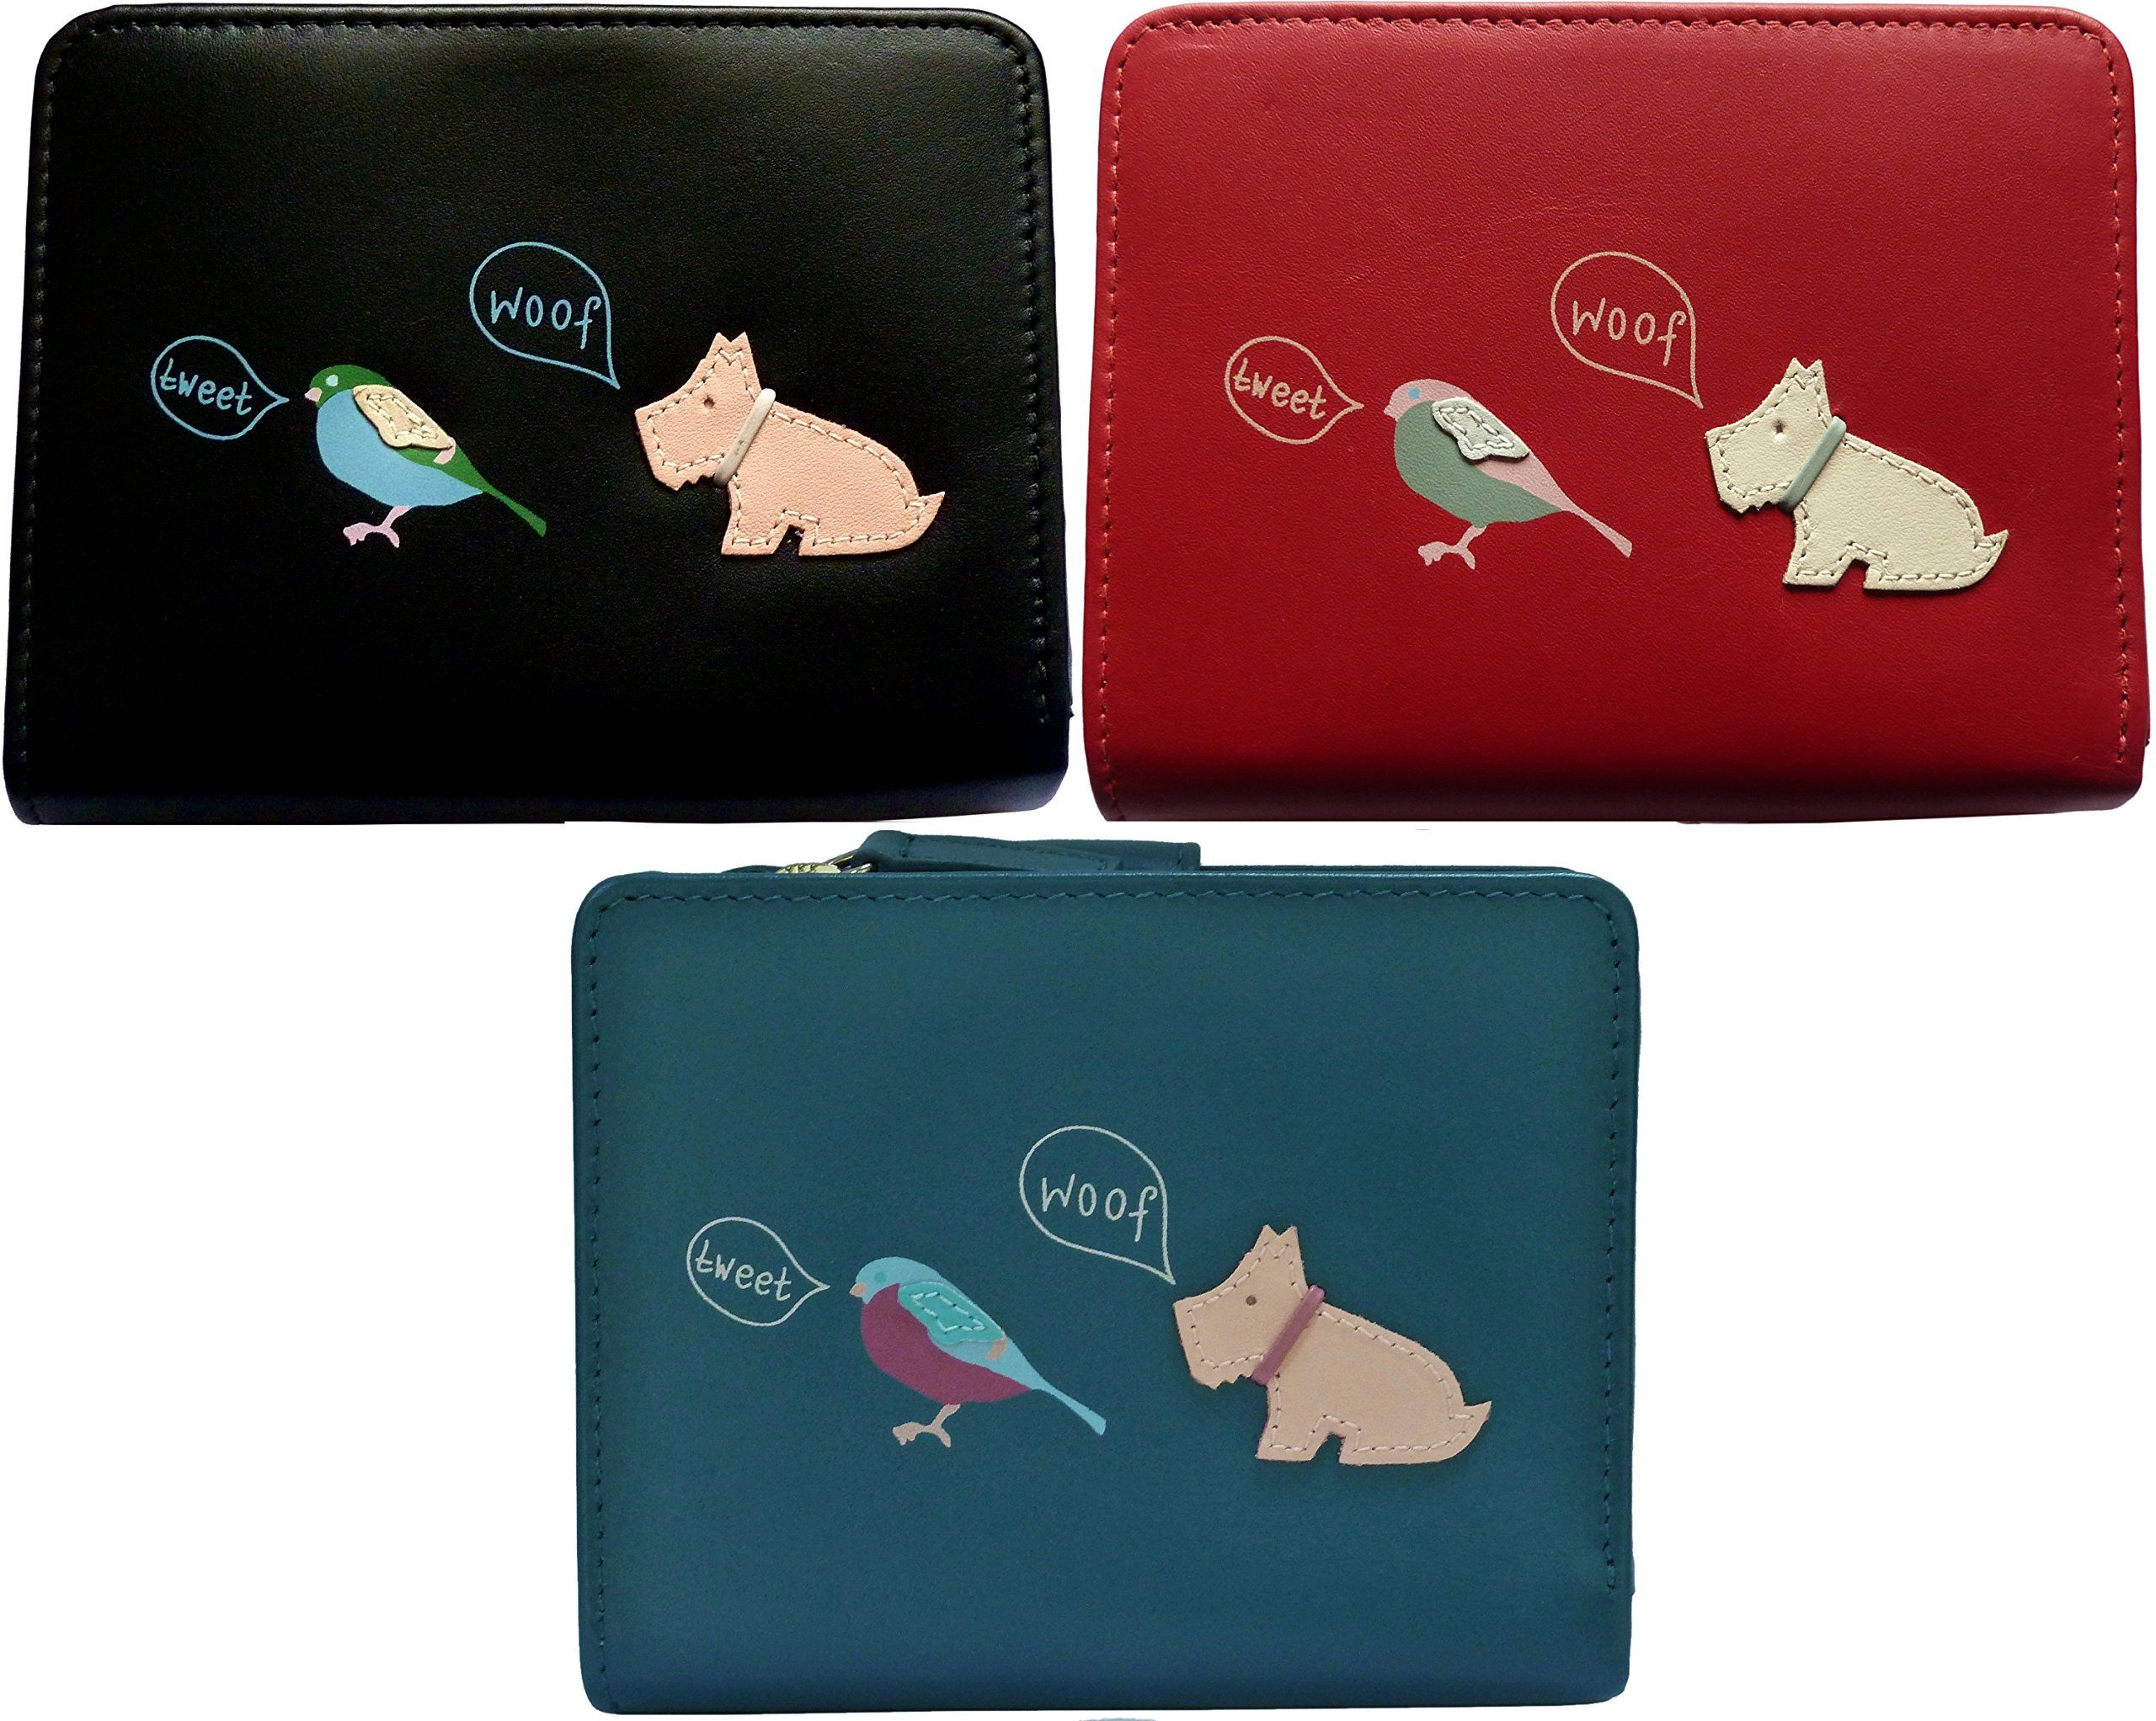 radley purse wallet a little bird told me scottie dog medium red  radley purse wallet a little bird told me scottie dog medium red leather designer